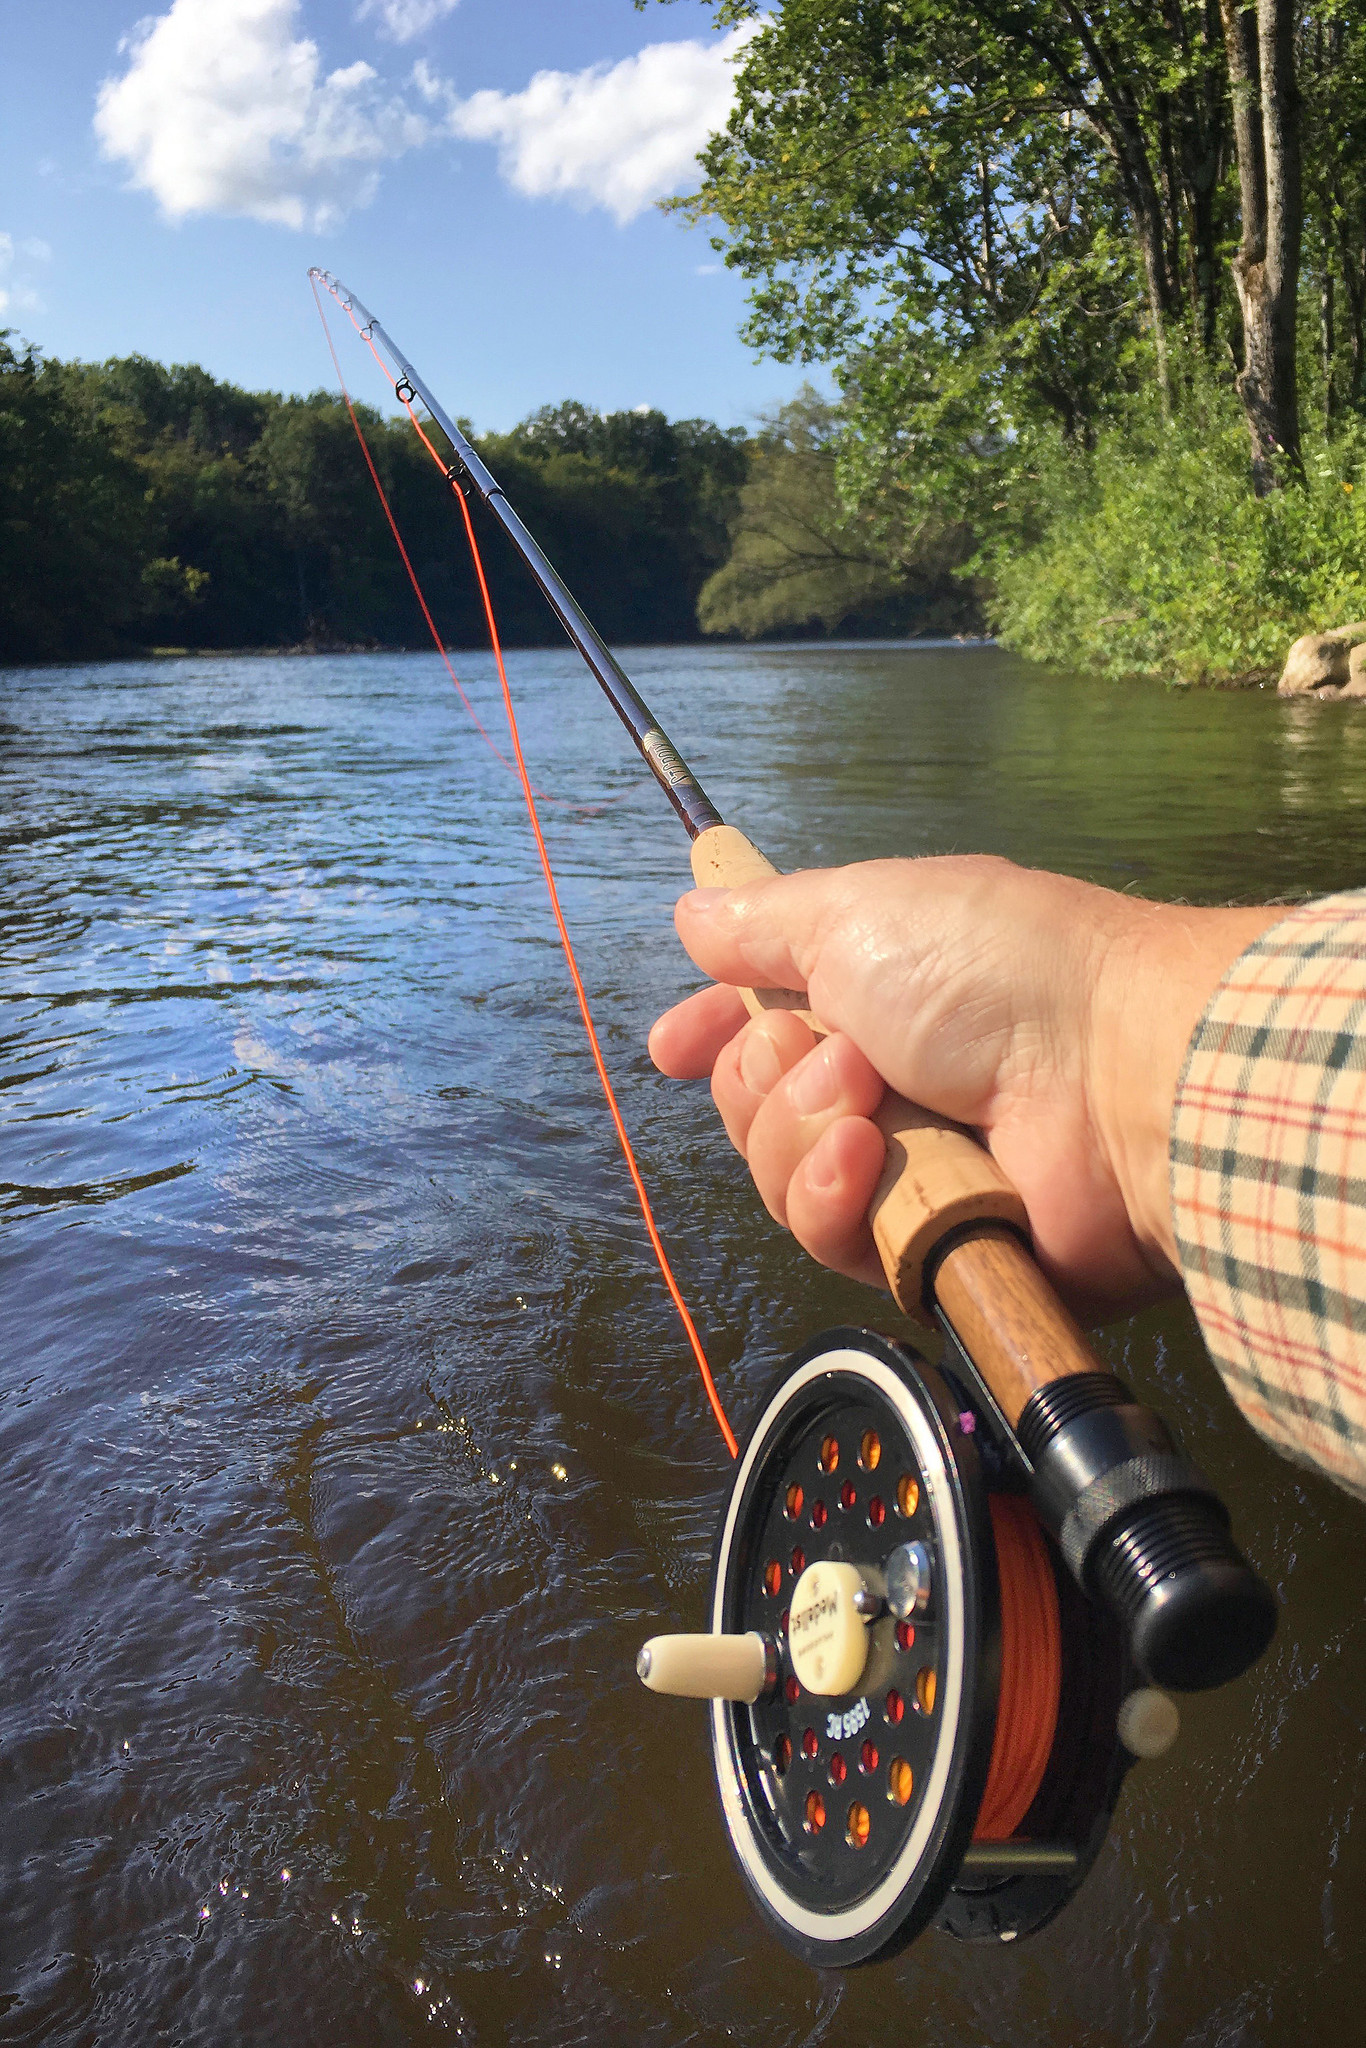 hand of someone fly fishing